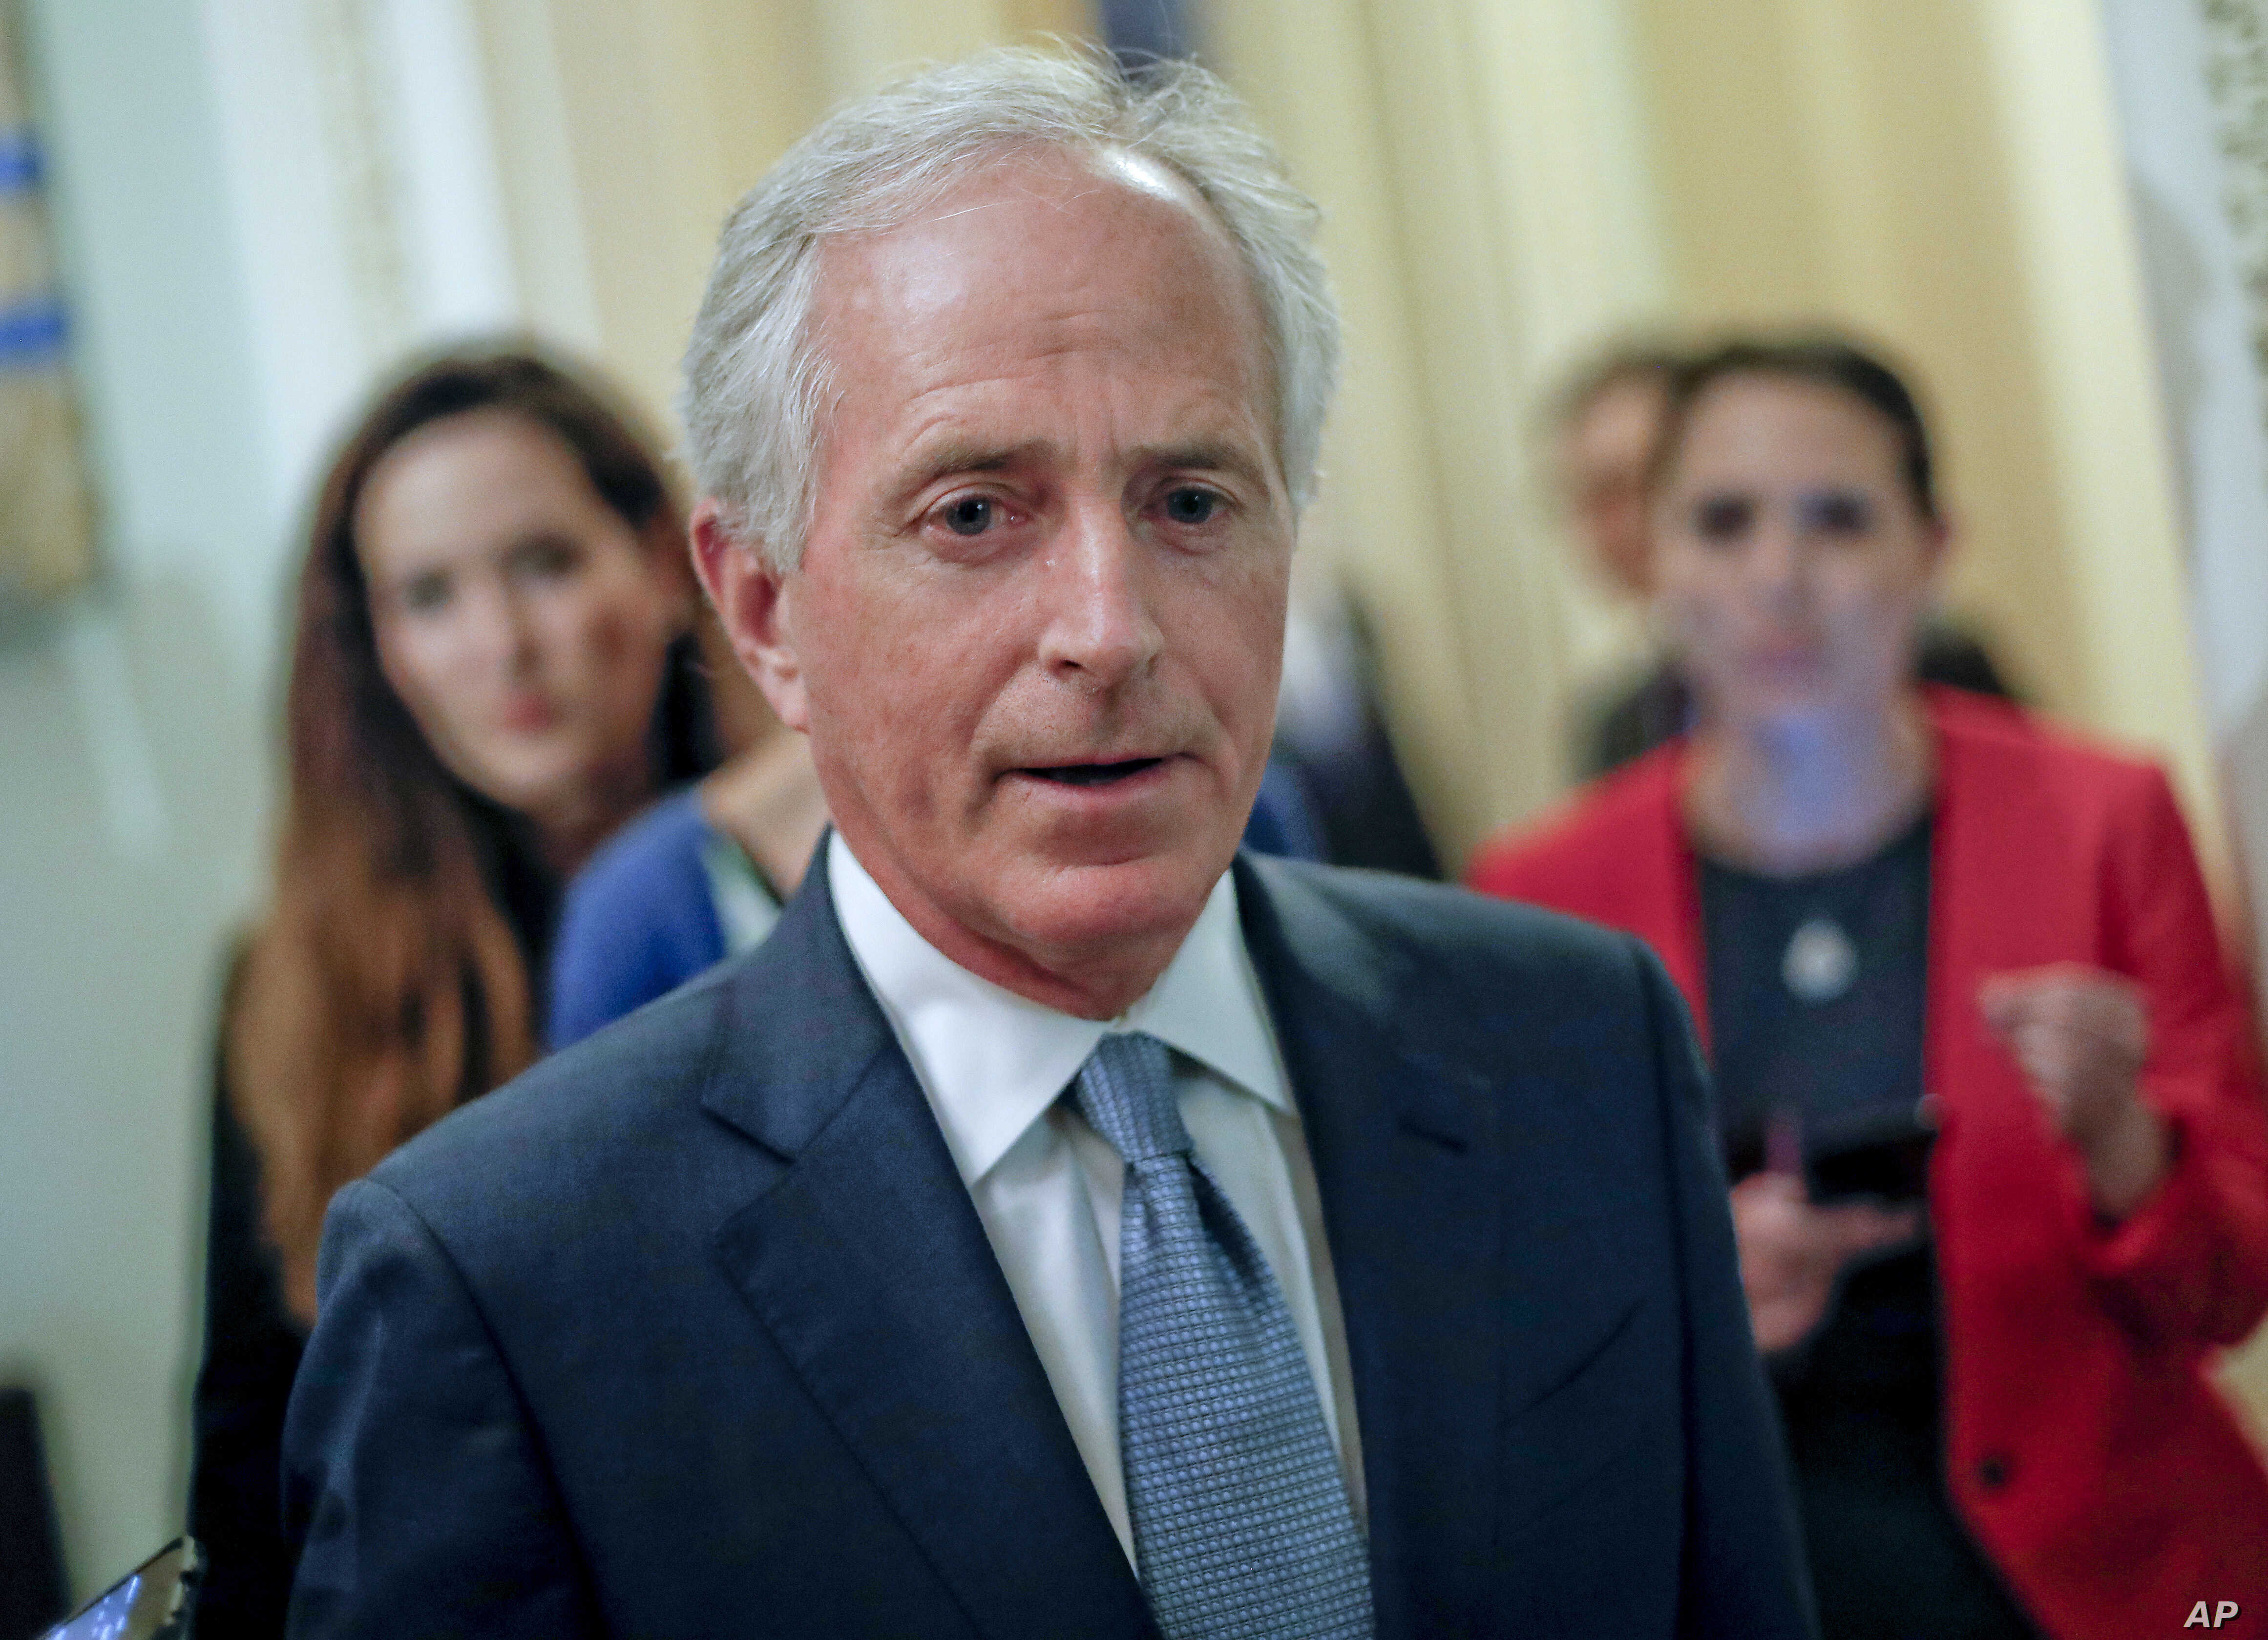 FILE - Sen. Bob Corker, R-Tenn., speaks to members of the media as he arrives for a luncheon with Vice President Mike Pence, on Capitol Hill in Washington, May 2, 2017. A package of new Russia sanctions is heading toward overwhelming approval by Cong...